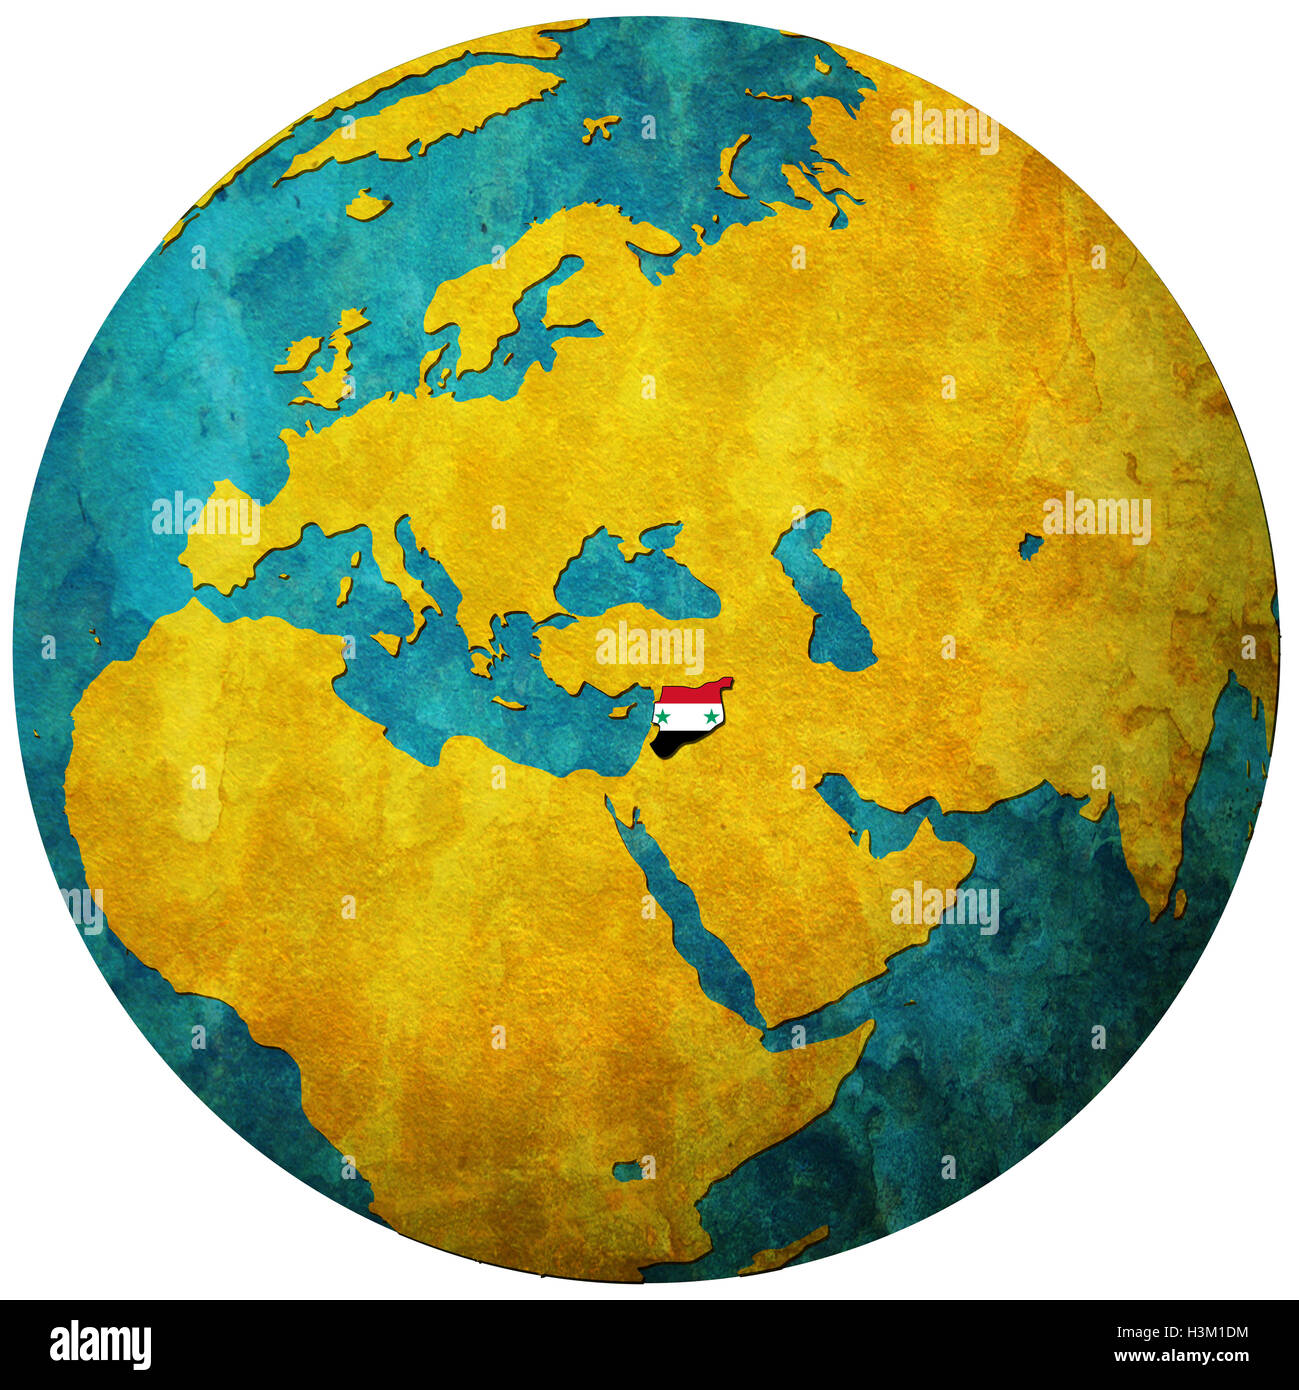 syria territory with flag on map of globe Stock Photo